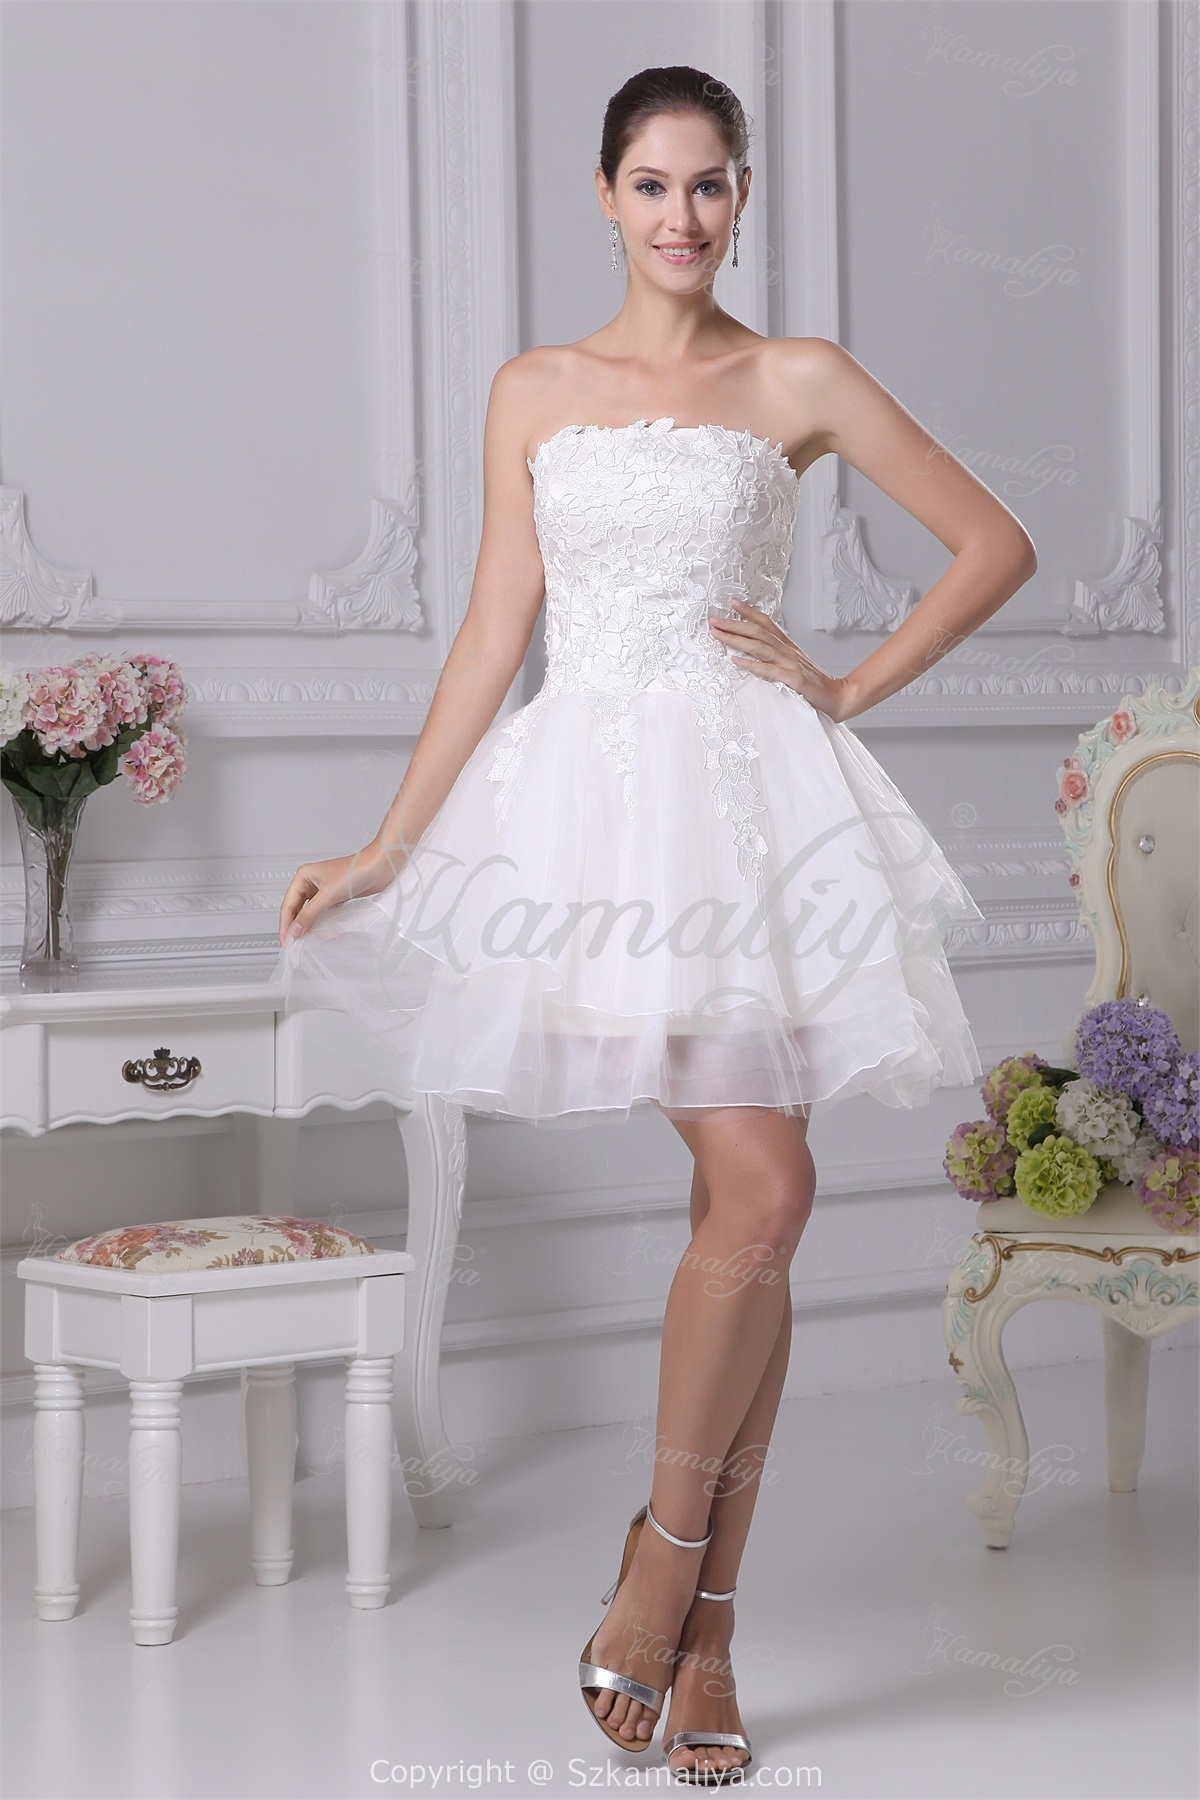 Sexy short beach wedding dress with zipper back sangmaestro for Hot dresses for weddings